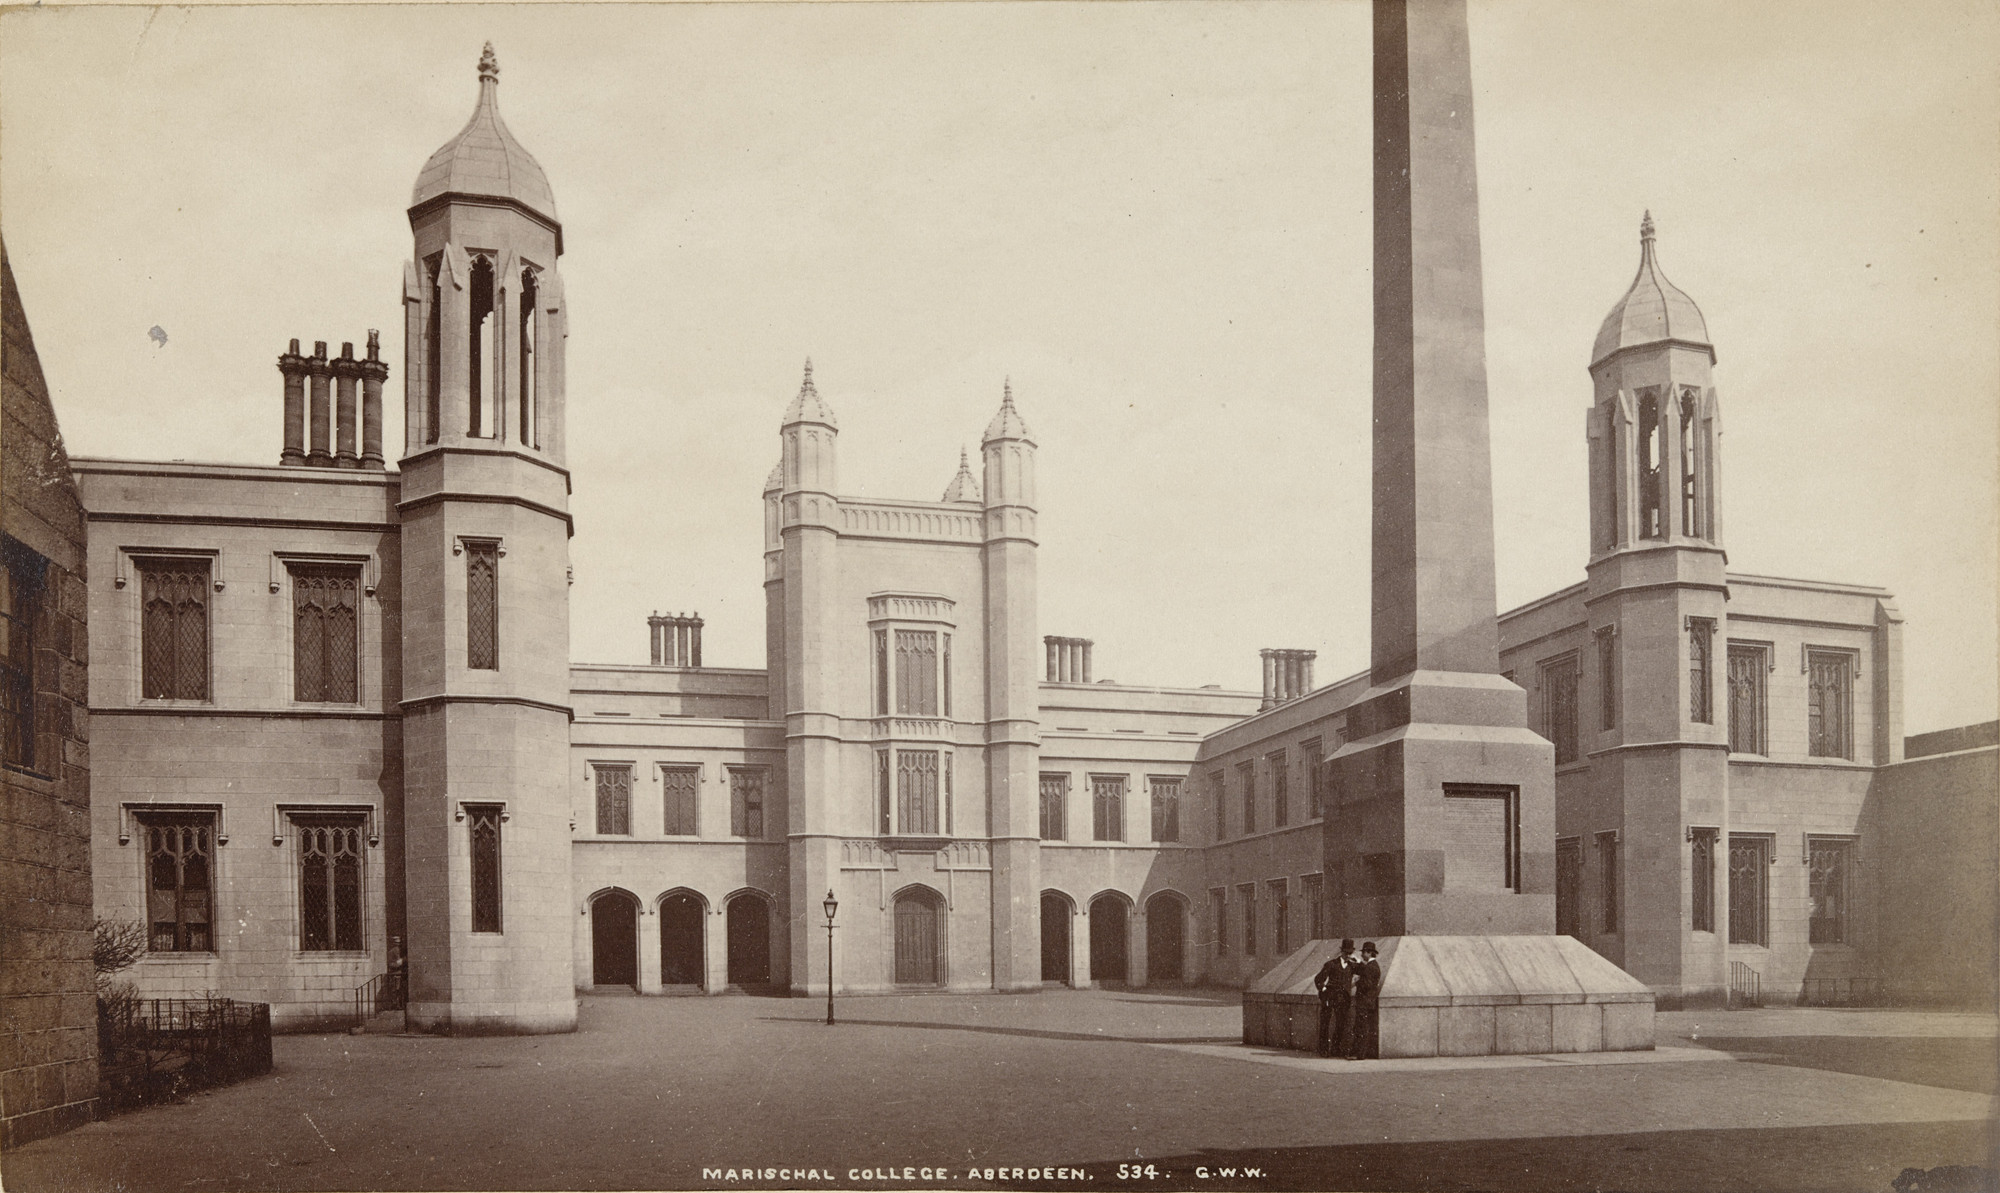 George Washington Wilson. Marischal College, Aberdeen. c. 1875